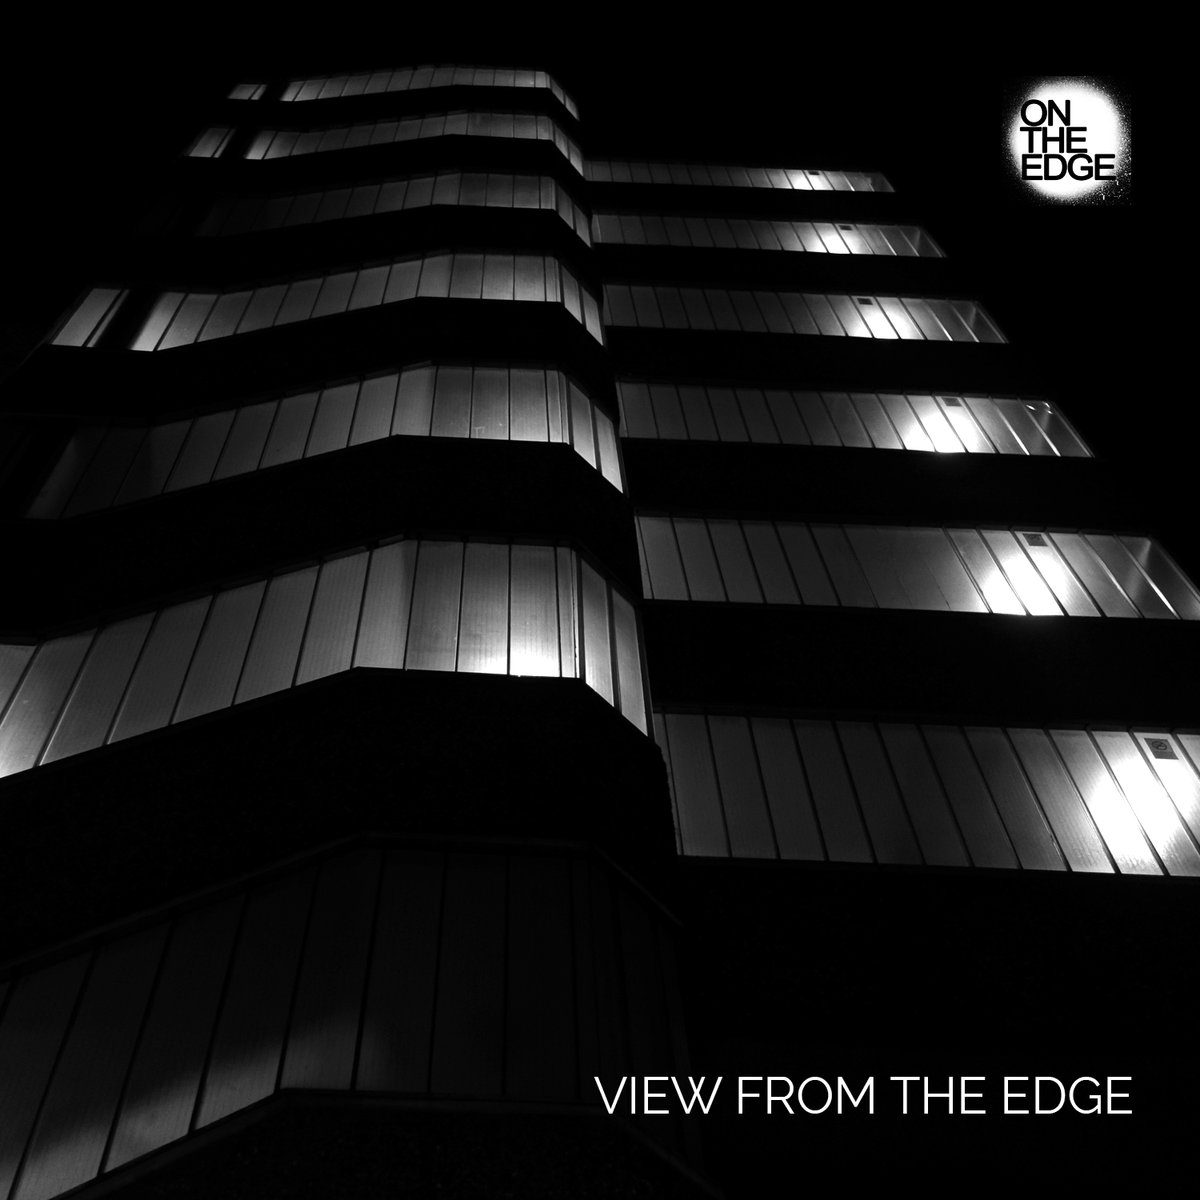 BIOME - VIEW FROM THE EDGE (ON THE EDGE, 2016)